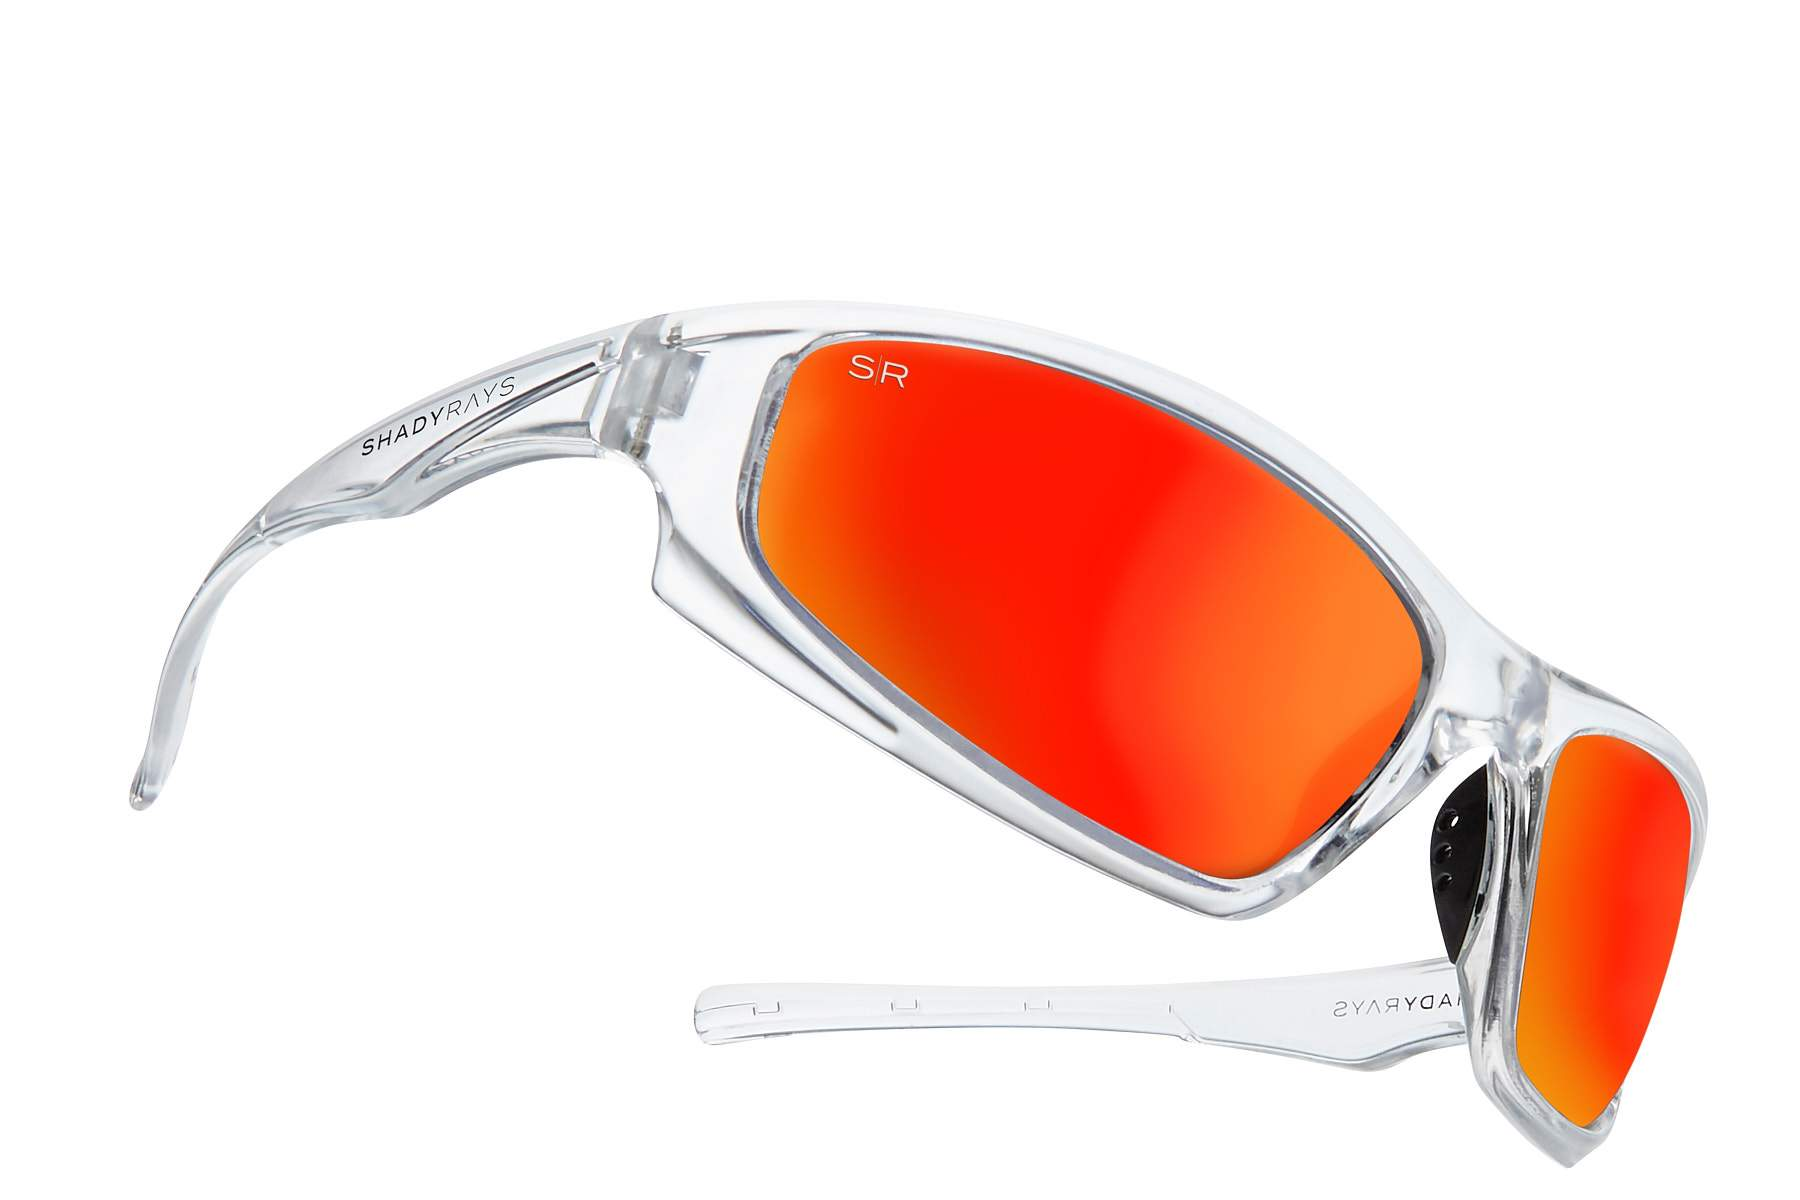 Shady Rays X Series - Infrared Ice Polarized Sunglasses – Shady Rays ...